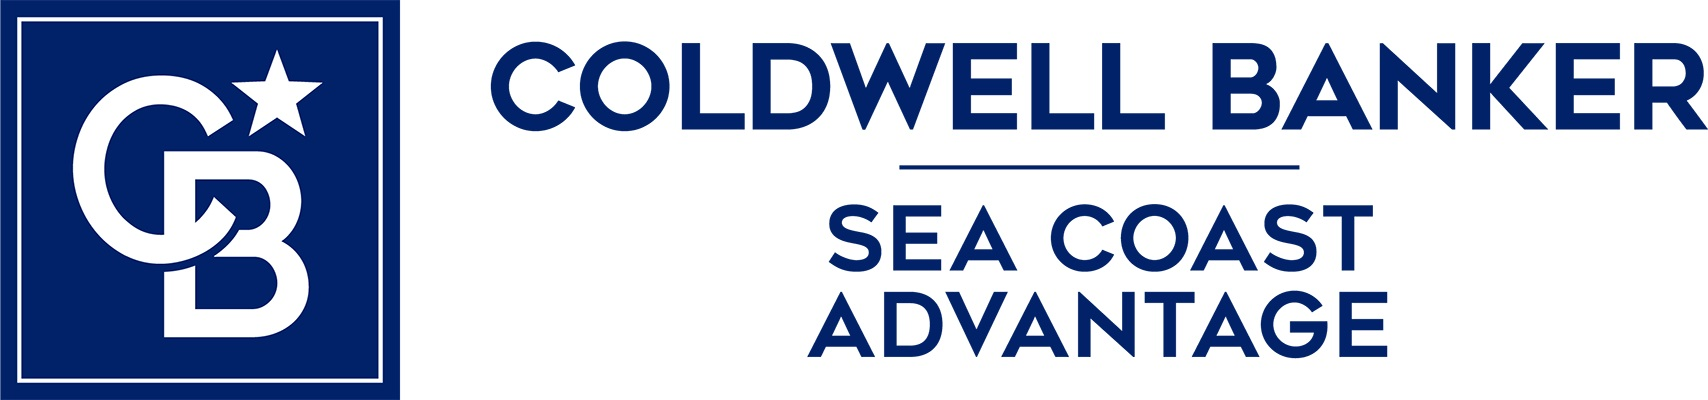 Brunswick Brokers - Coldwell Banker Sea Coast Advantage Logo